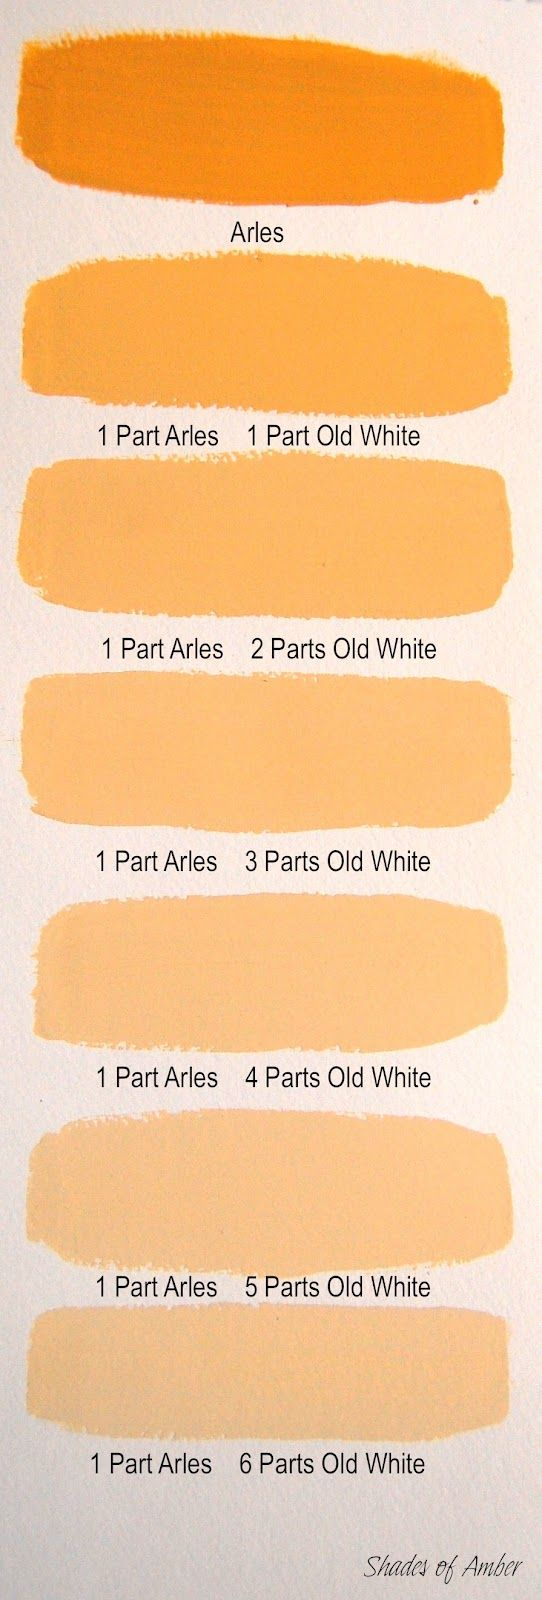 Shades of Amber: Chalk Paint Color Theory - Arles   shabby chic ...